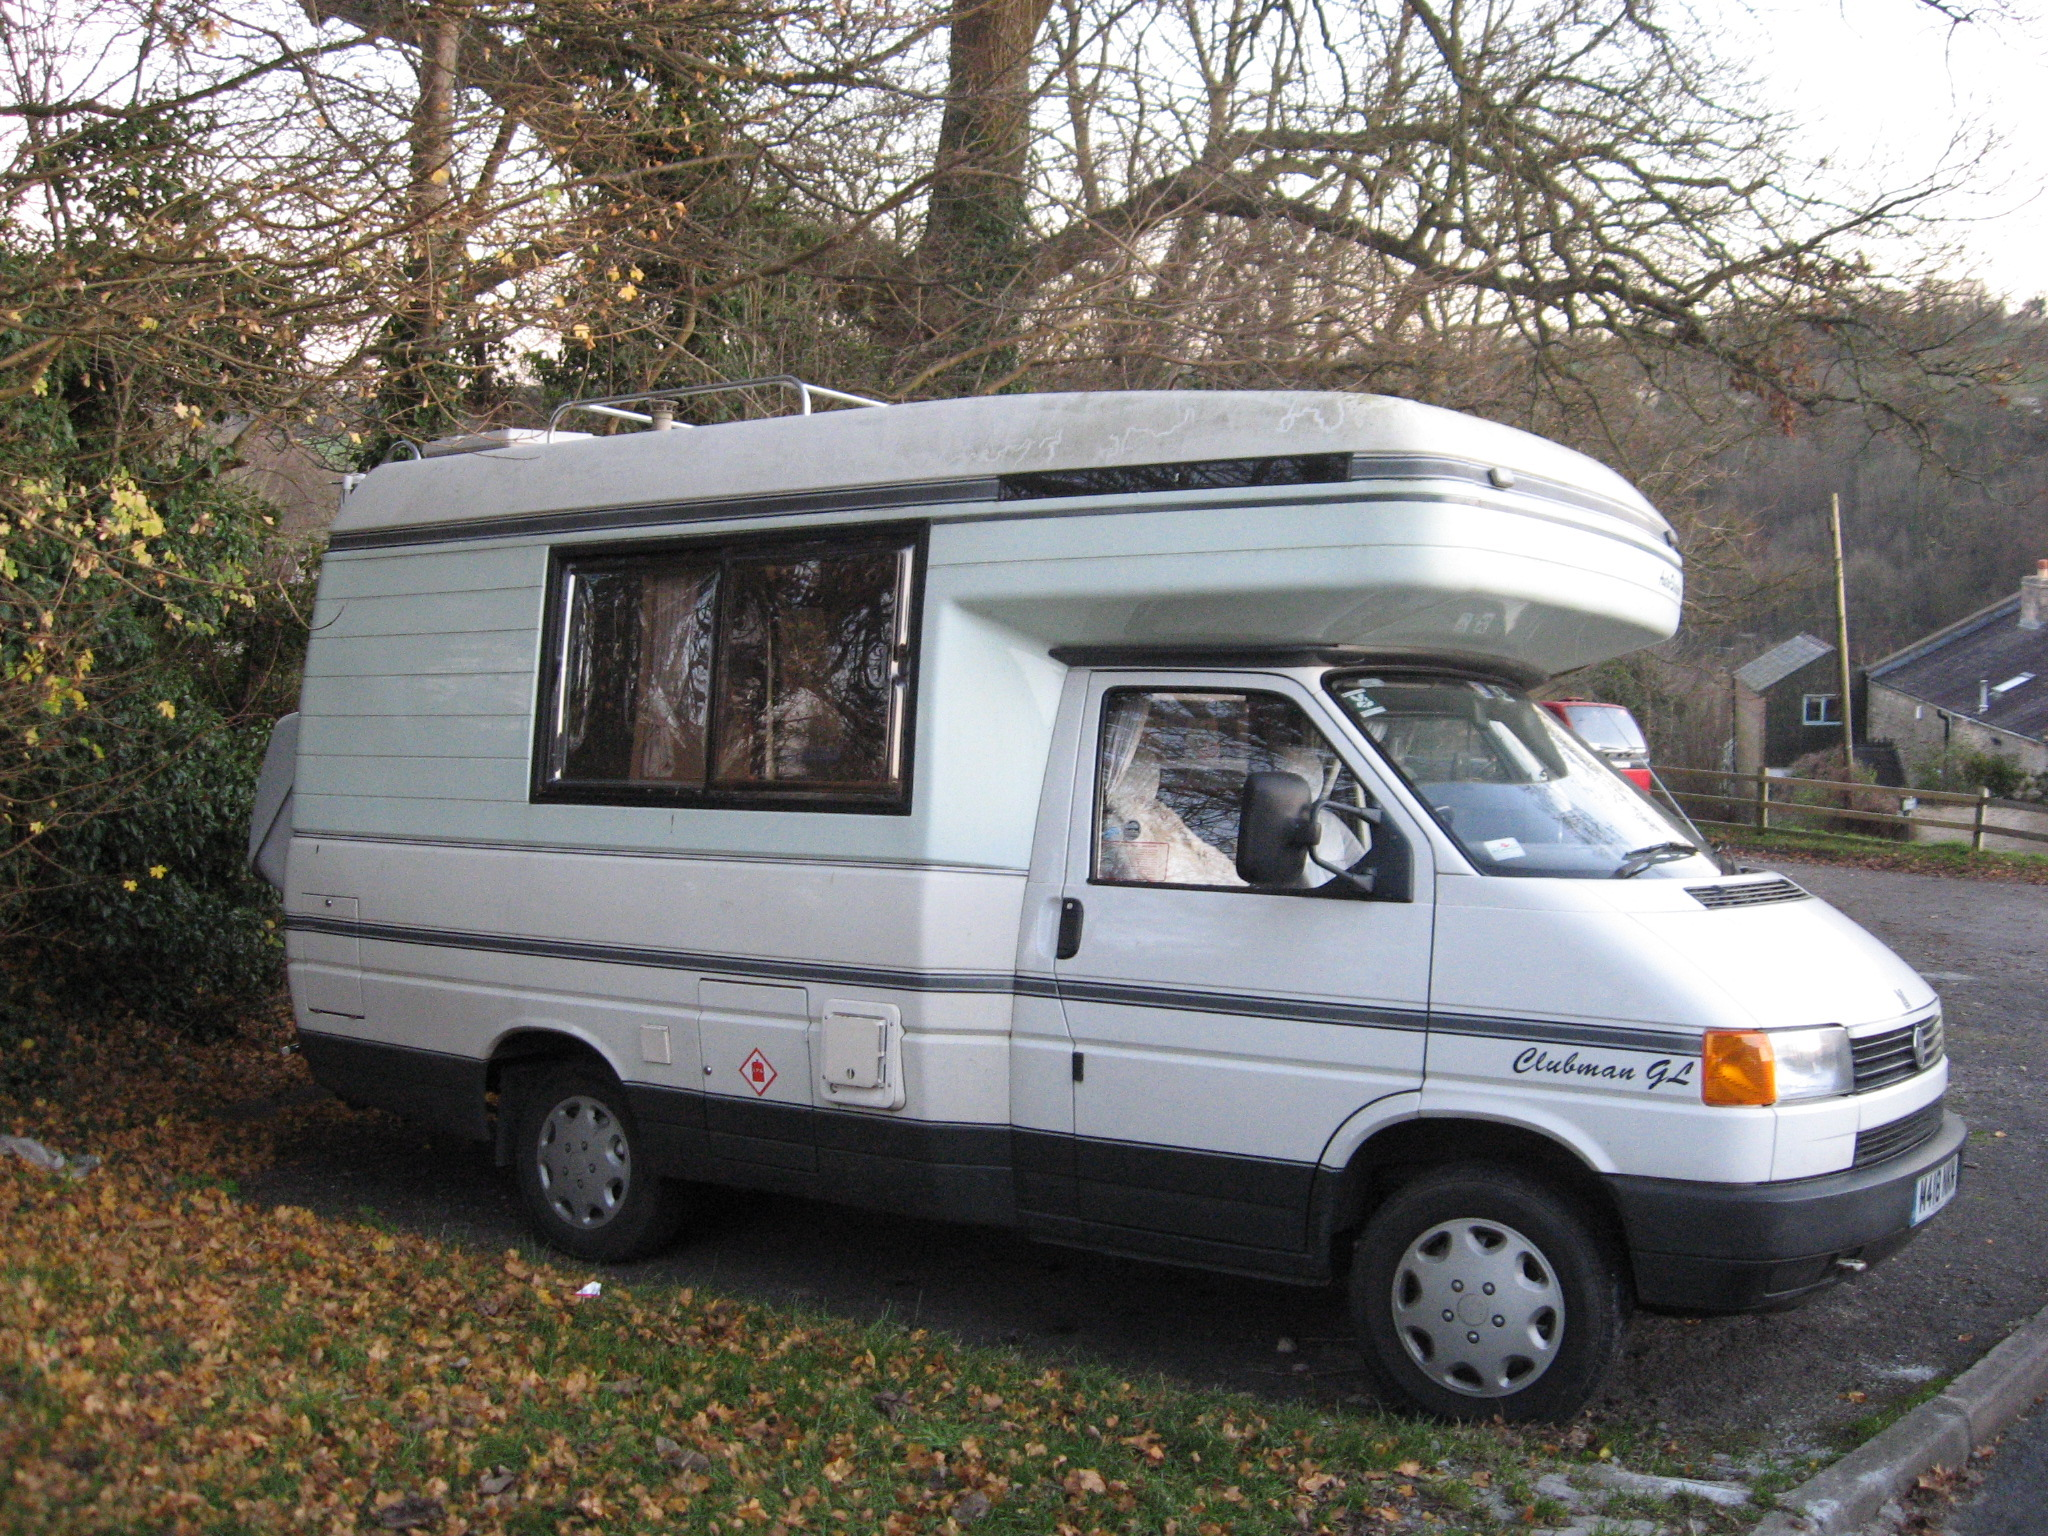 Wanted Space For Farmer To Park His Camper Van So He Can Go College